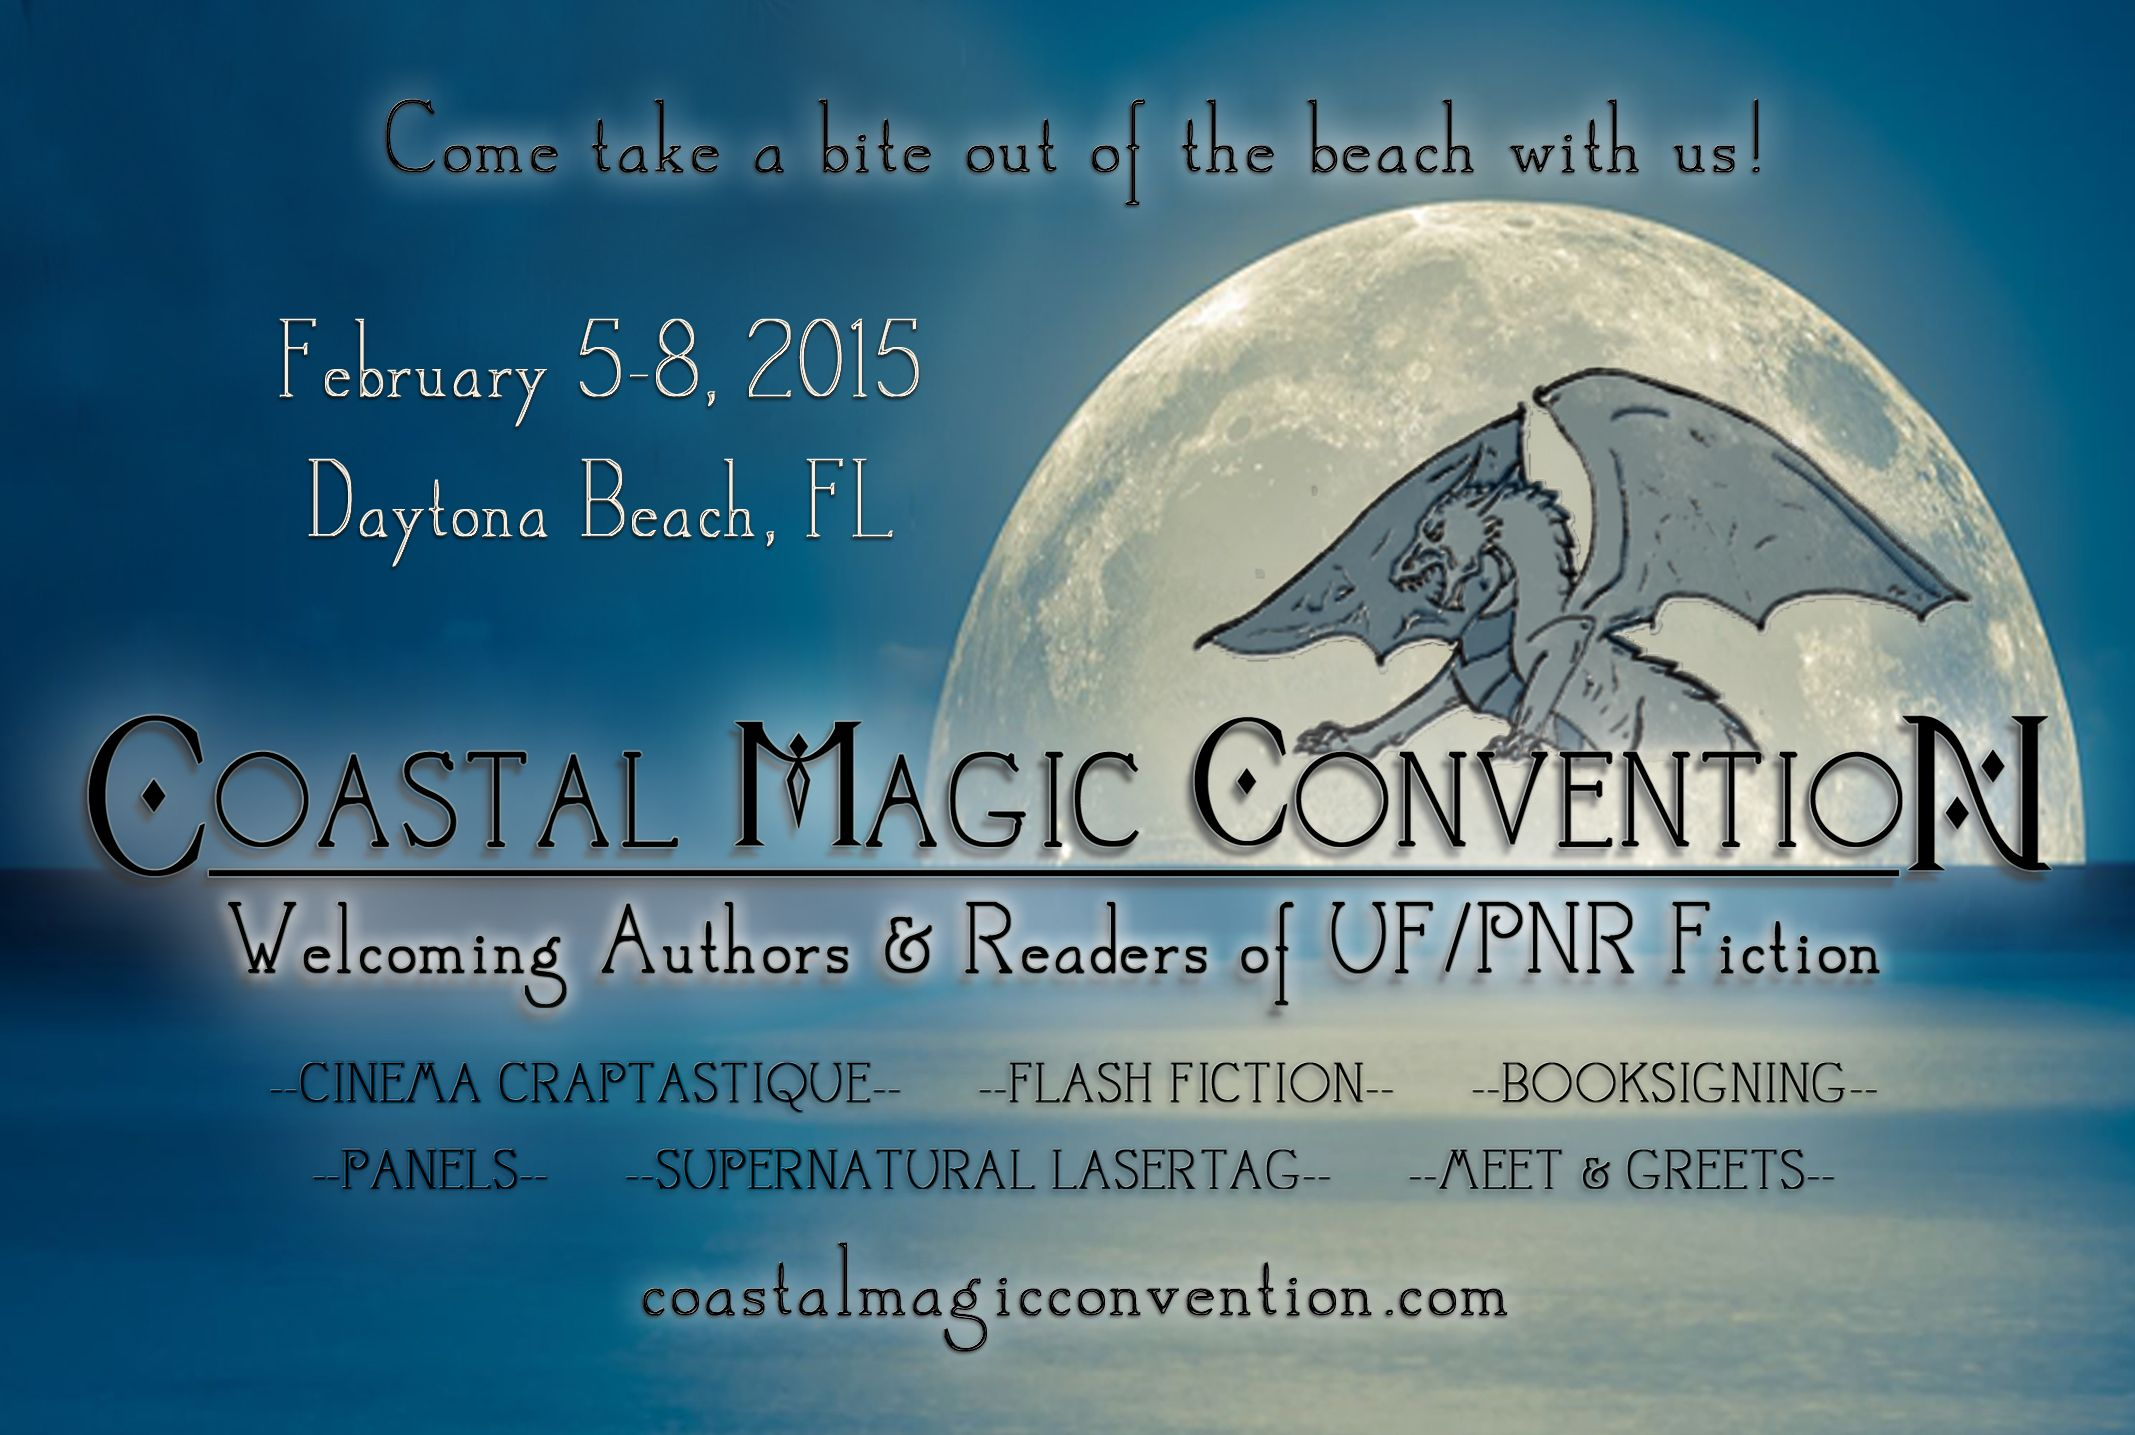 """Coastal Magic is a super casual, urban fantasy and paranormal romance focused convention in Daytona Beach, FL. With panels designed to start interesting discussion, and meet  greets with fun themes, we've got something for everyone. Join us for reader / blogger / author shenanigans and lots of """"preternatural"""" chats. Come take a bite out of the beach with us!! http://CoastalMagicConvention.com"""